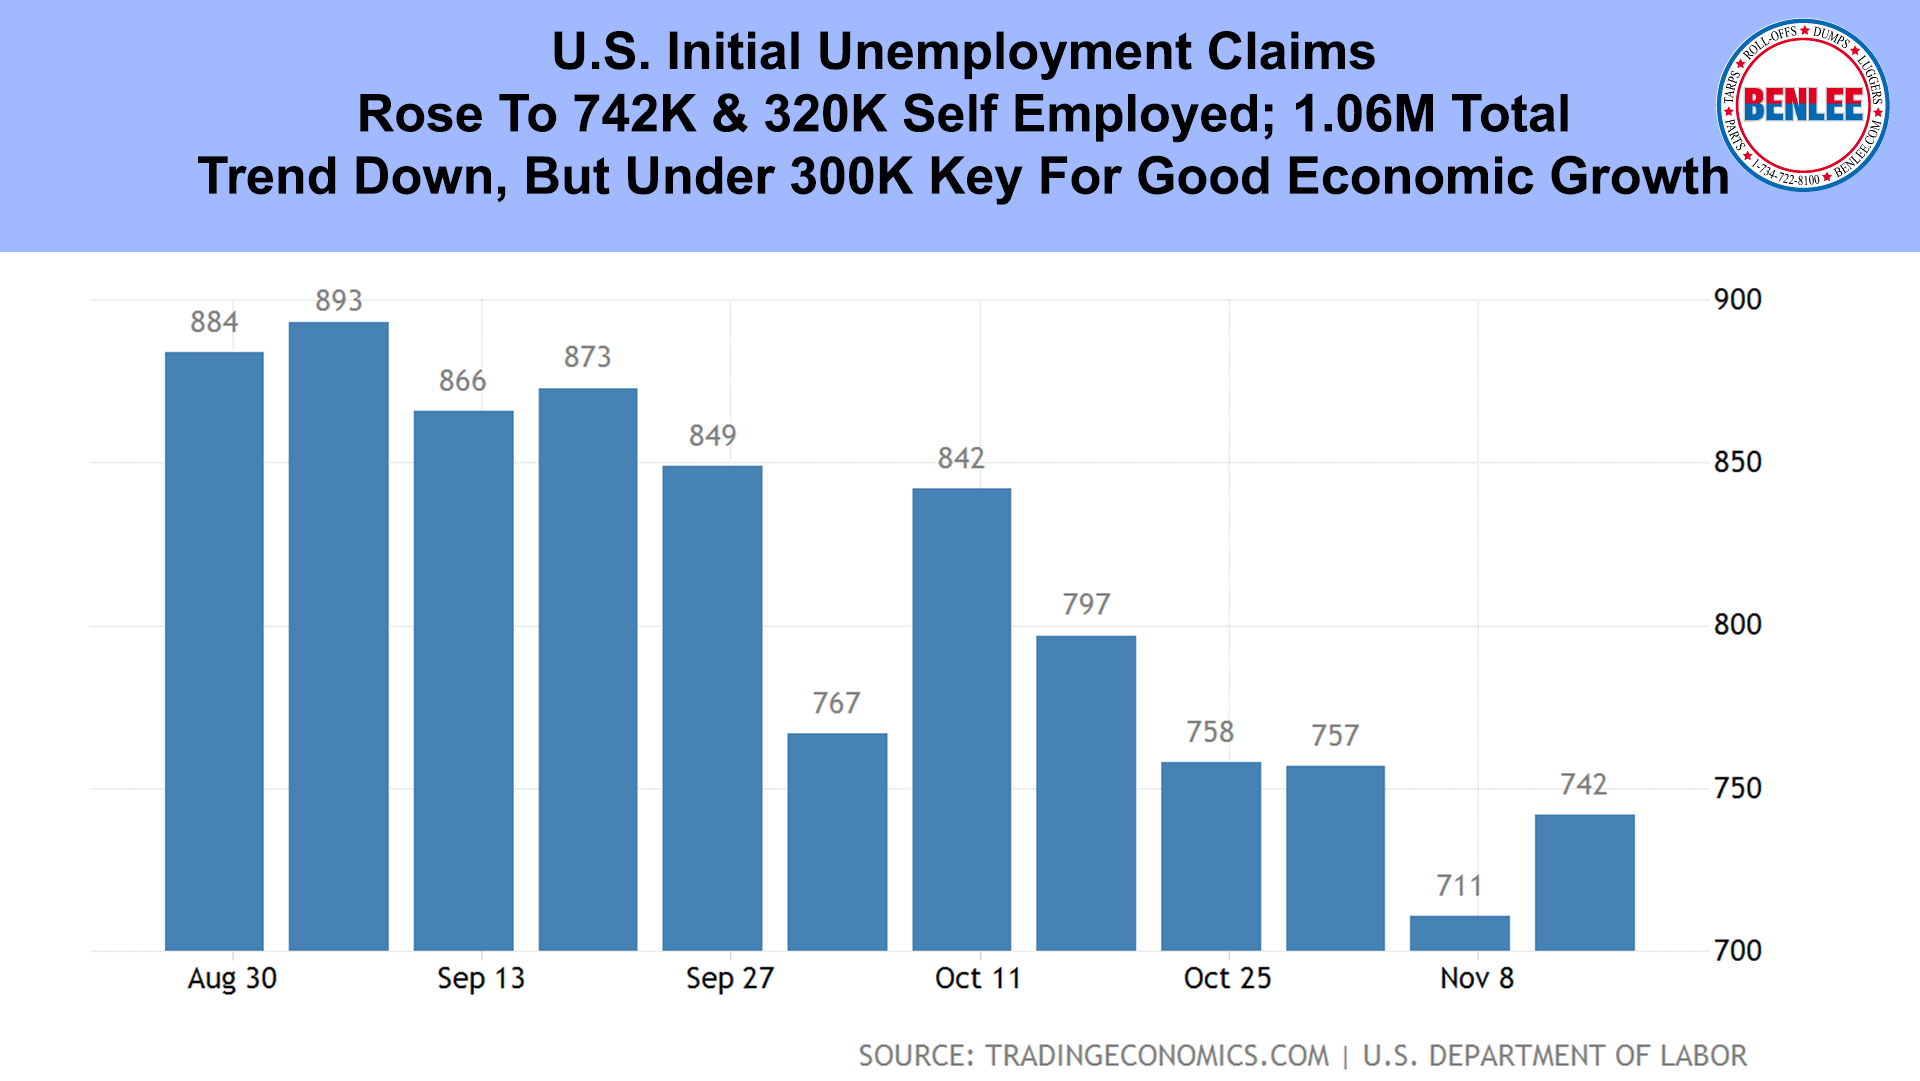 U.S. Initial Unemployment Claims